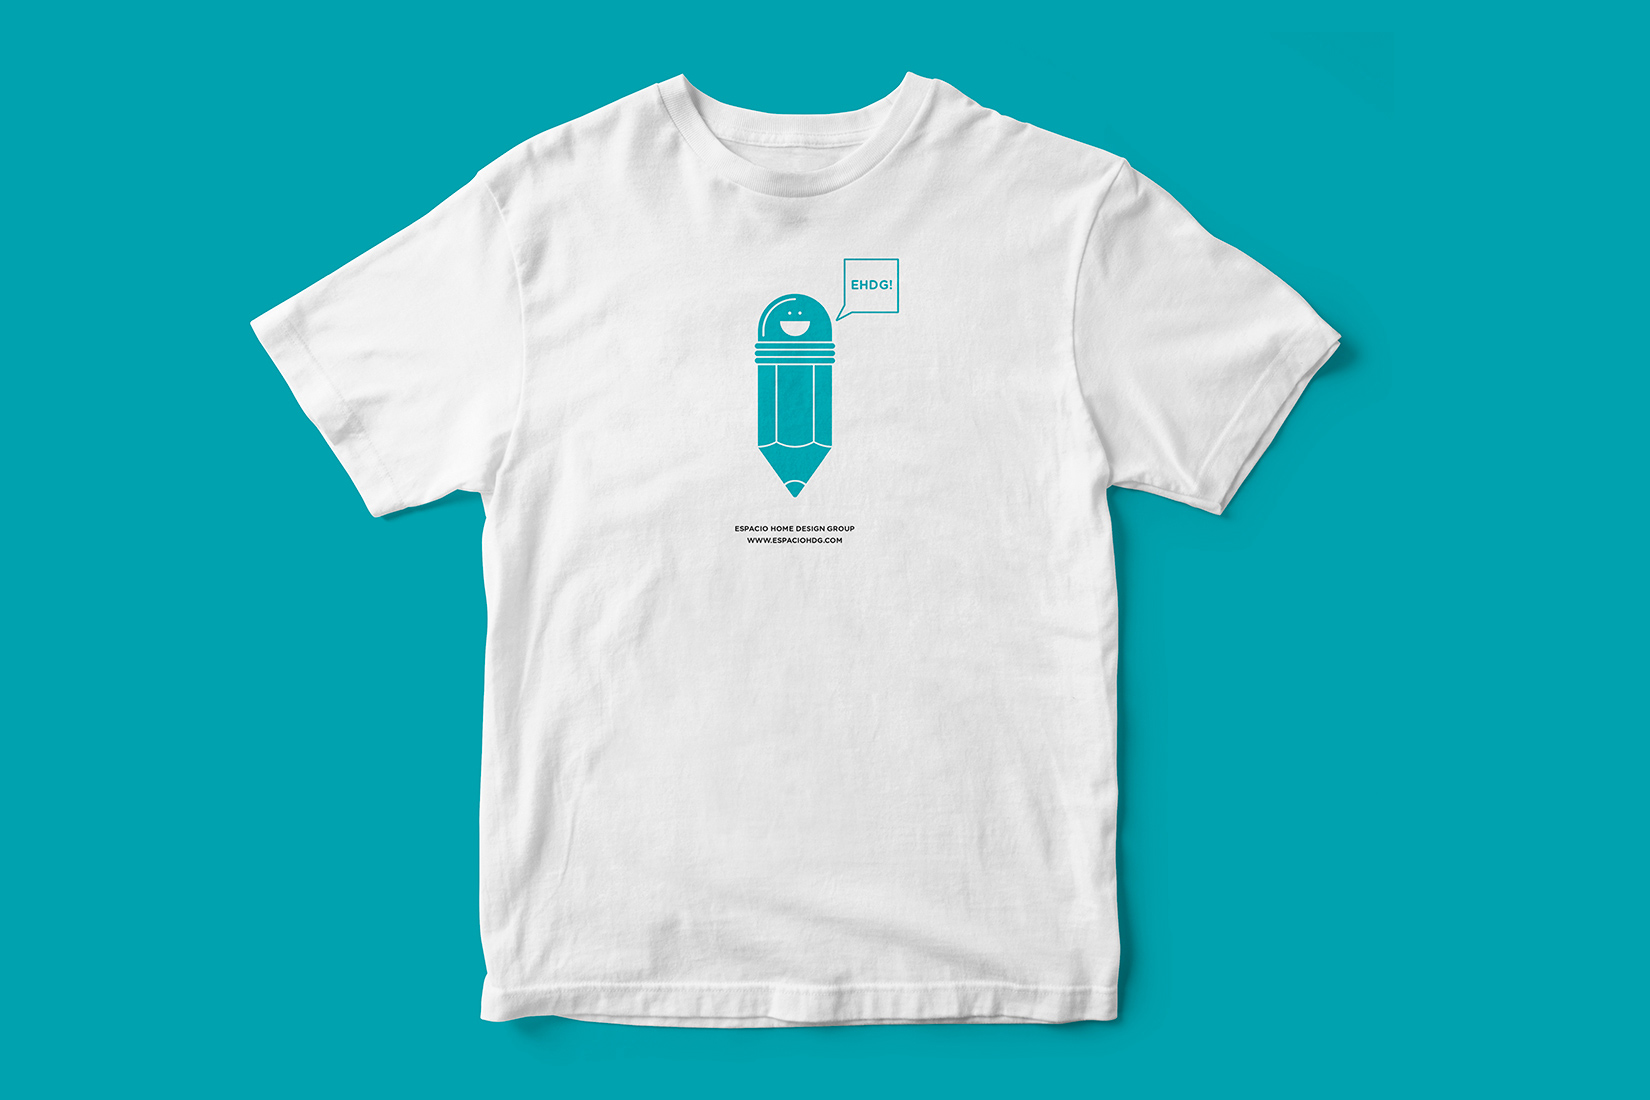 Espacio Home Design Group T-shirts